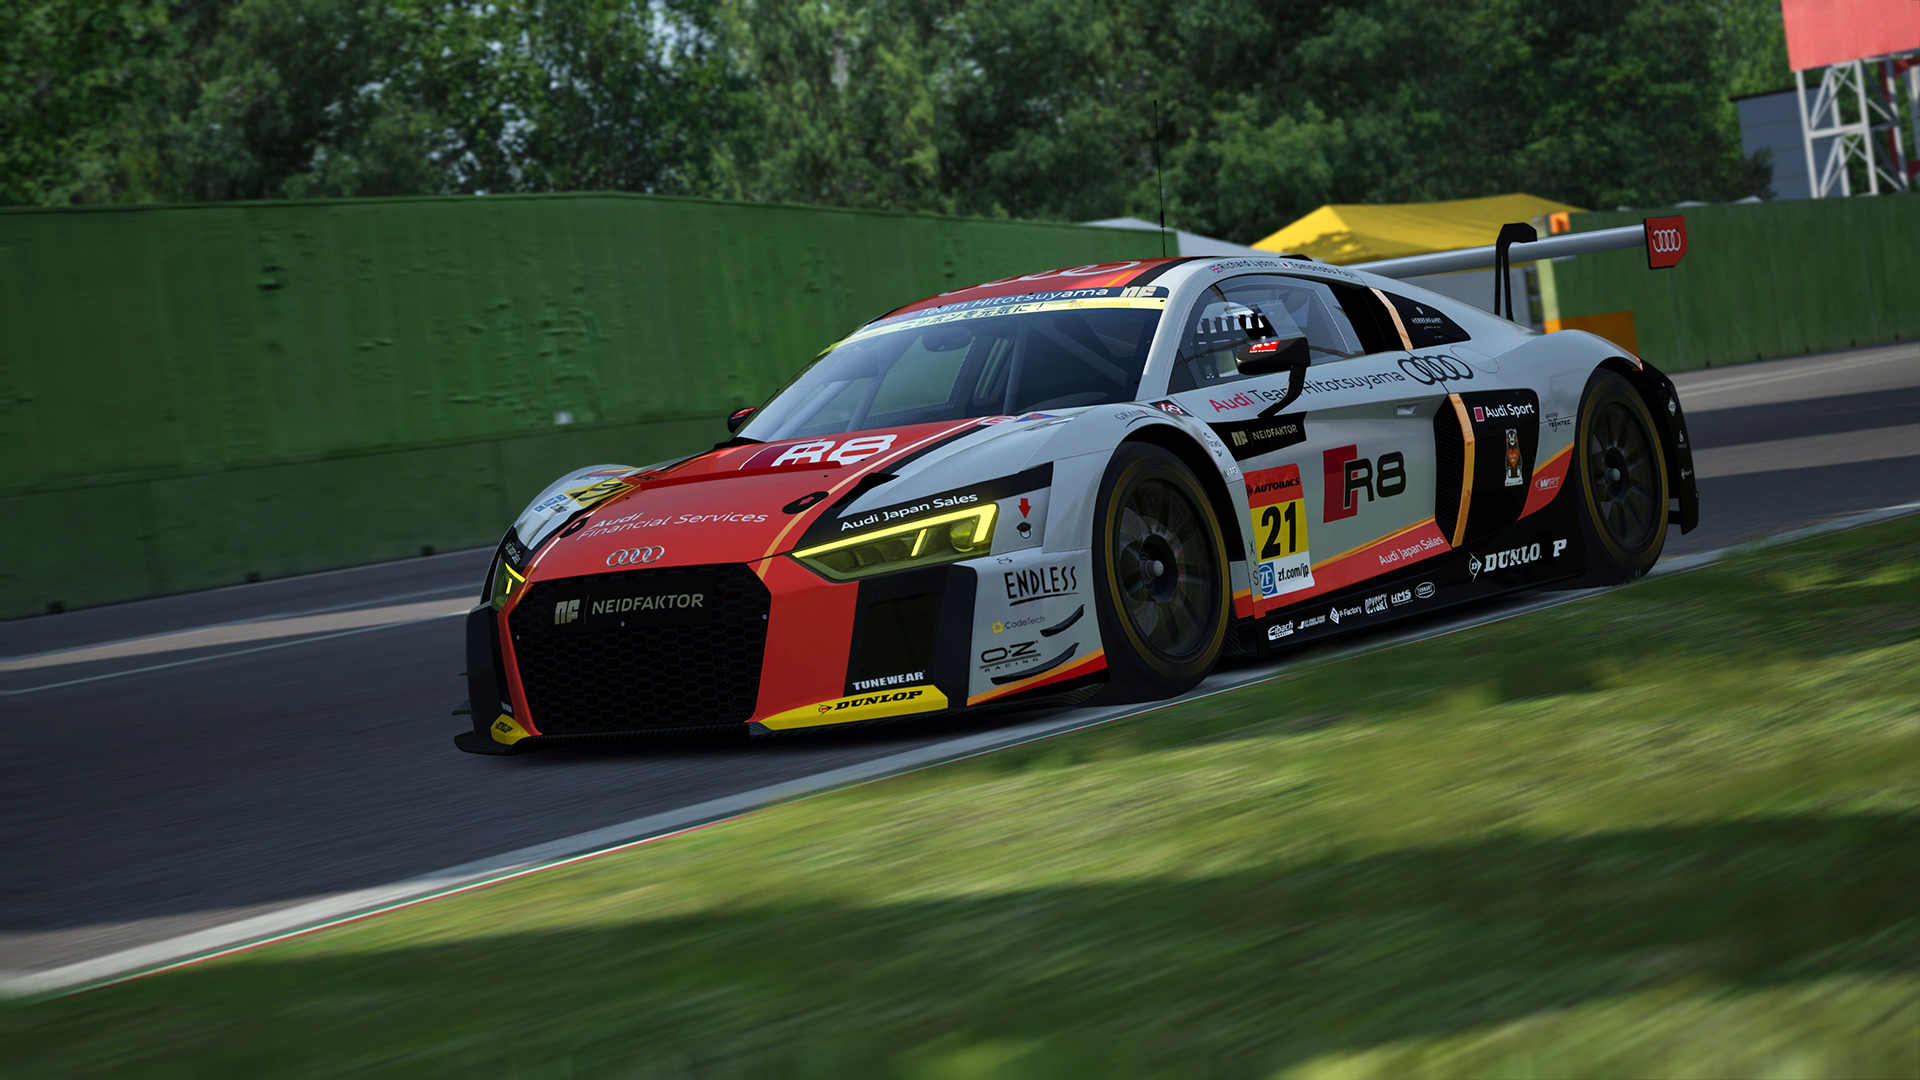 Screenshot_ks_audi_r8_lms_2016_imola_20-5-117-11-32-2.jpg